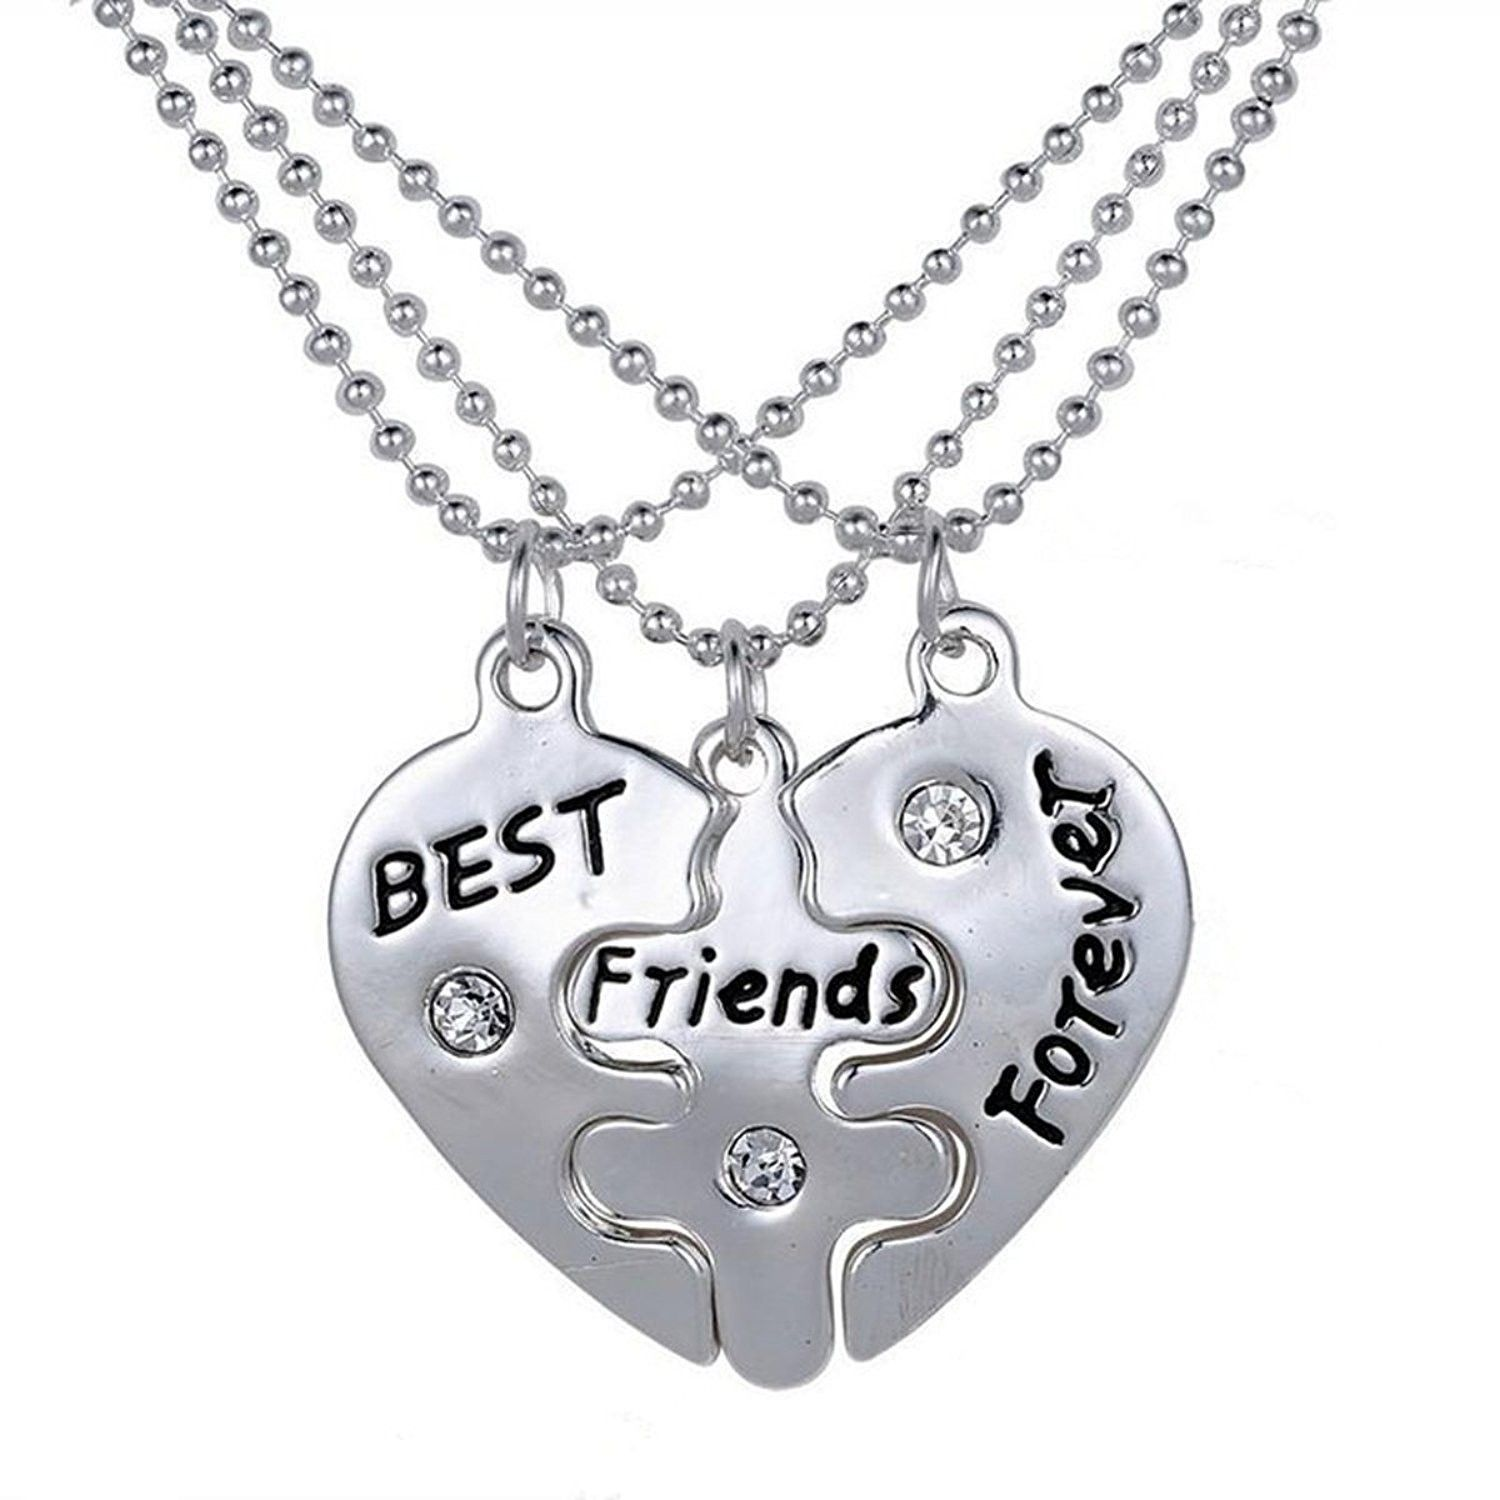 Silver Tone Best Friends Forever Three Piece Pendant Necklace